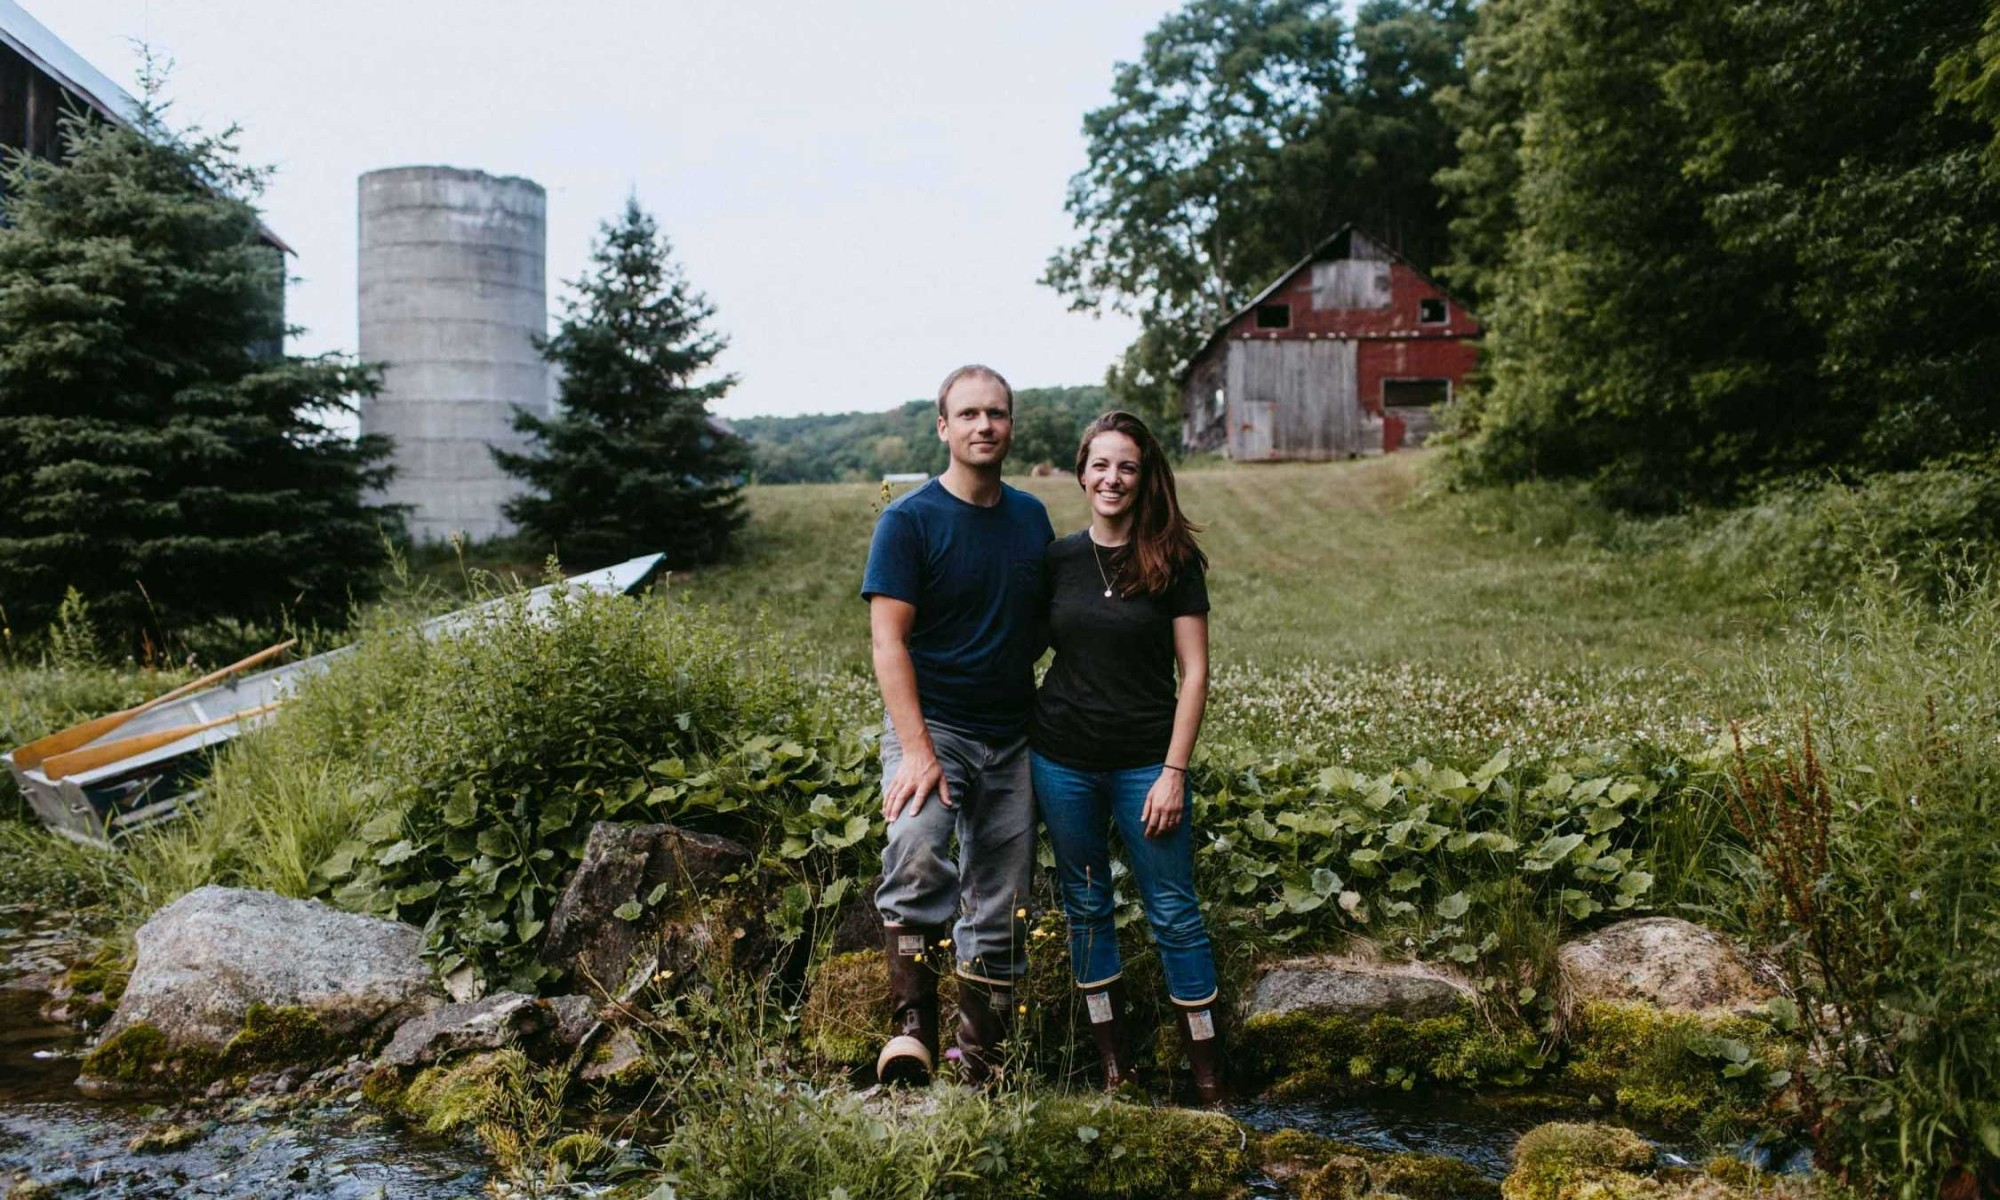 Courtney and John at their new home on the Farm